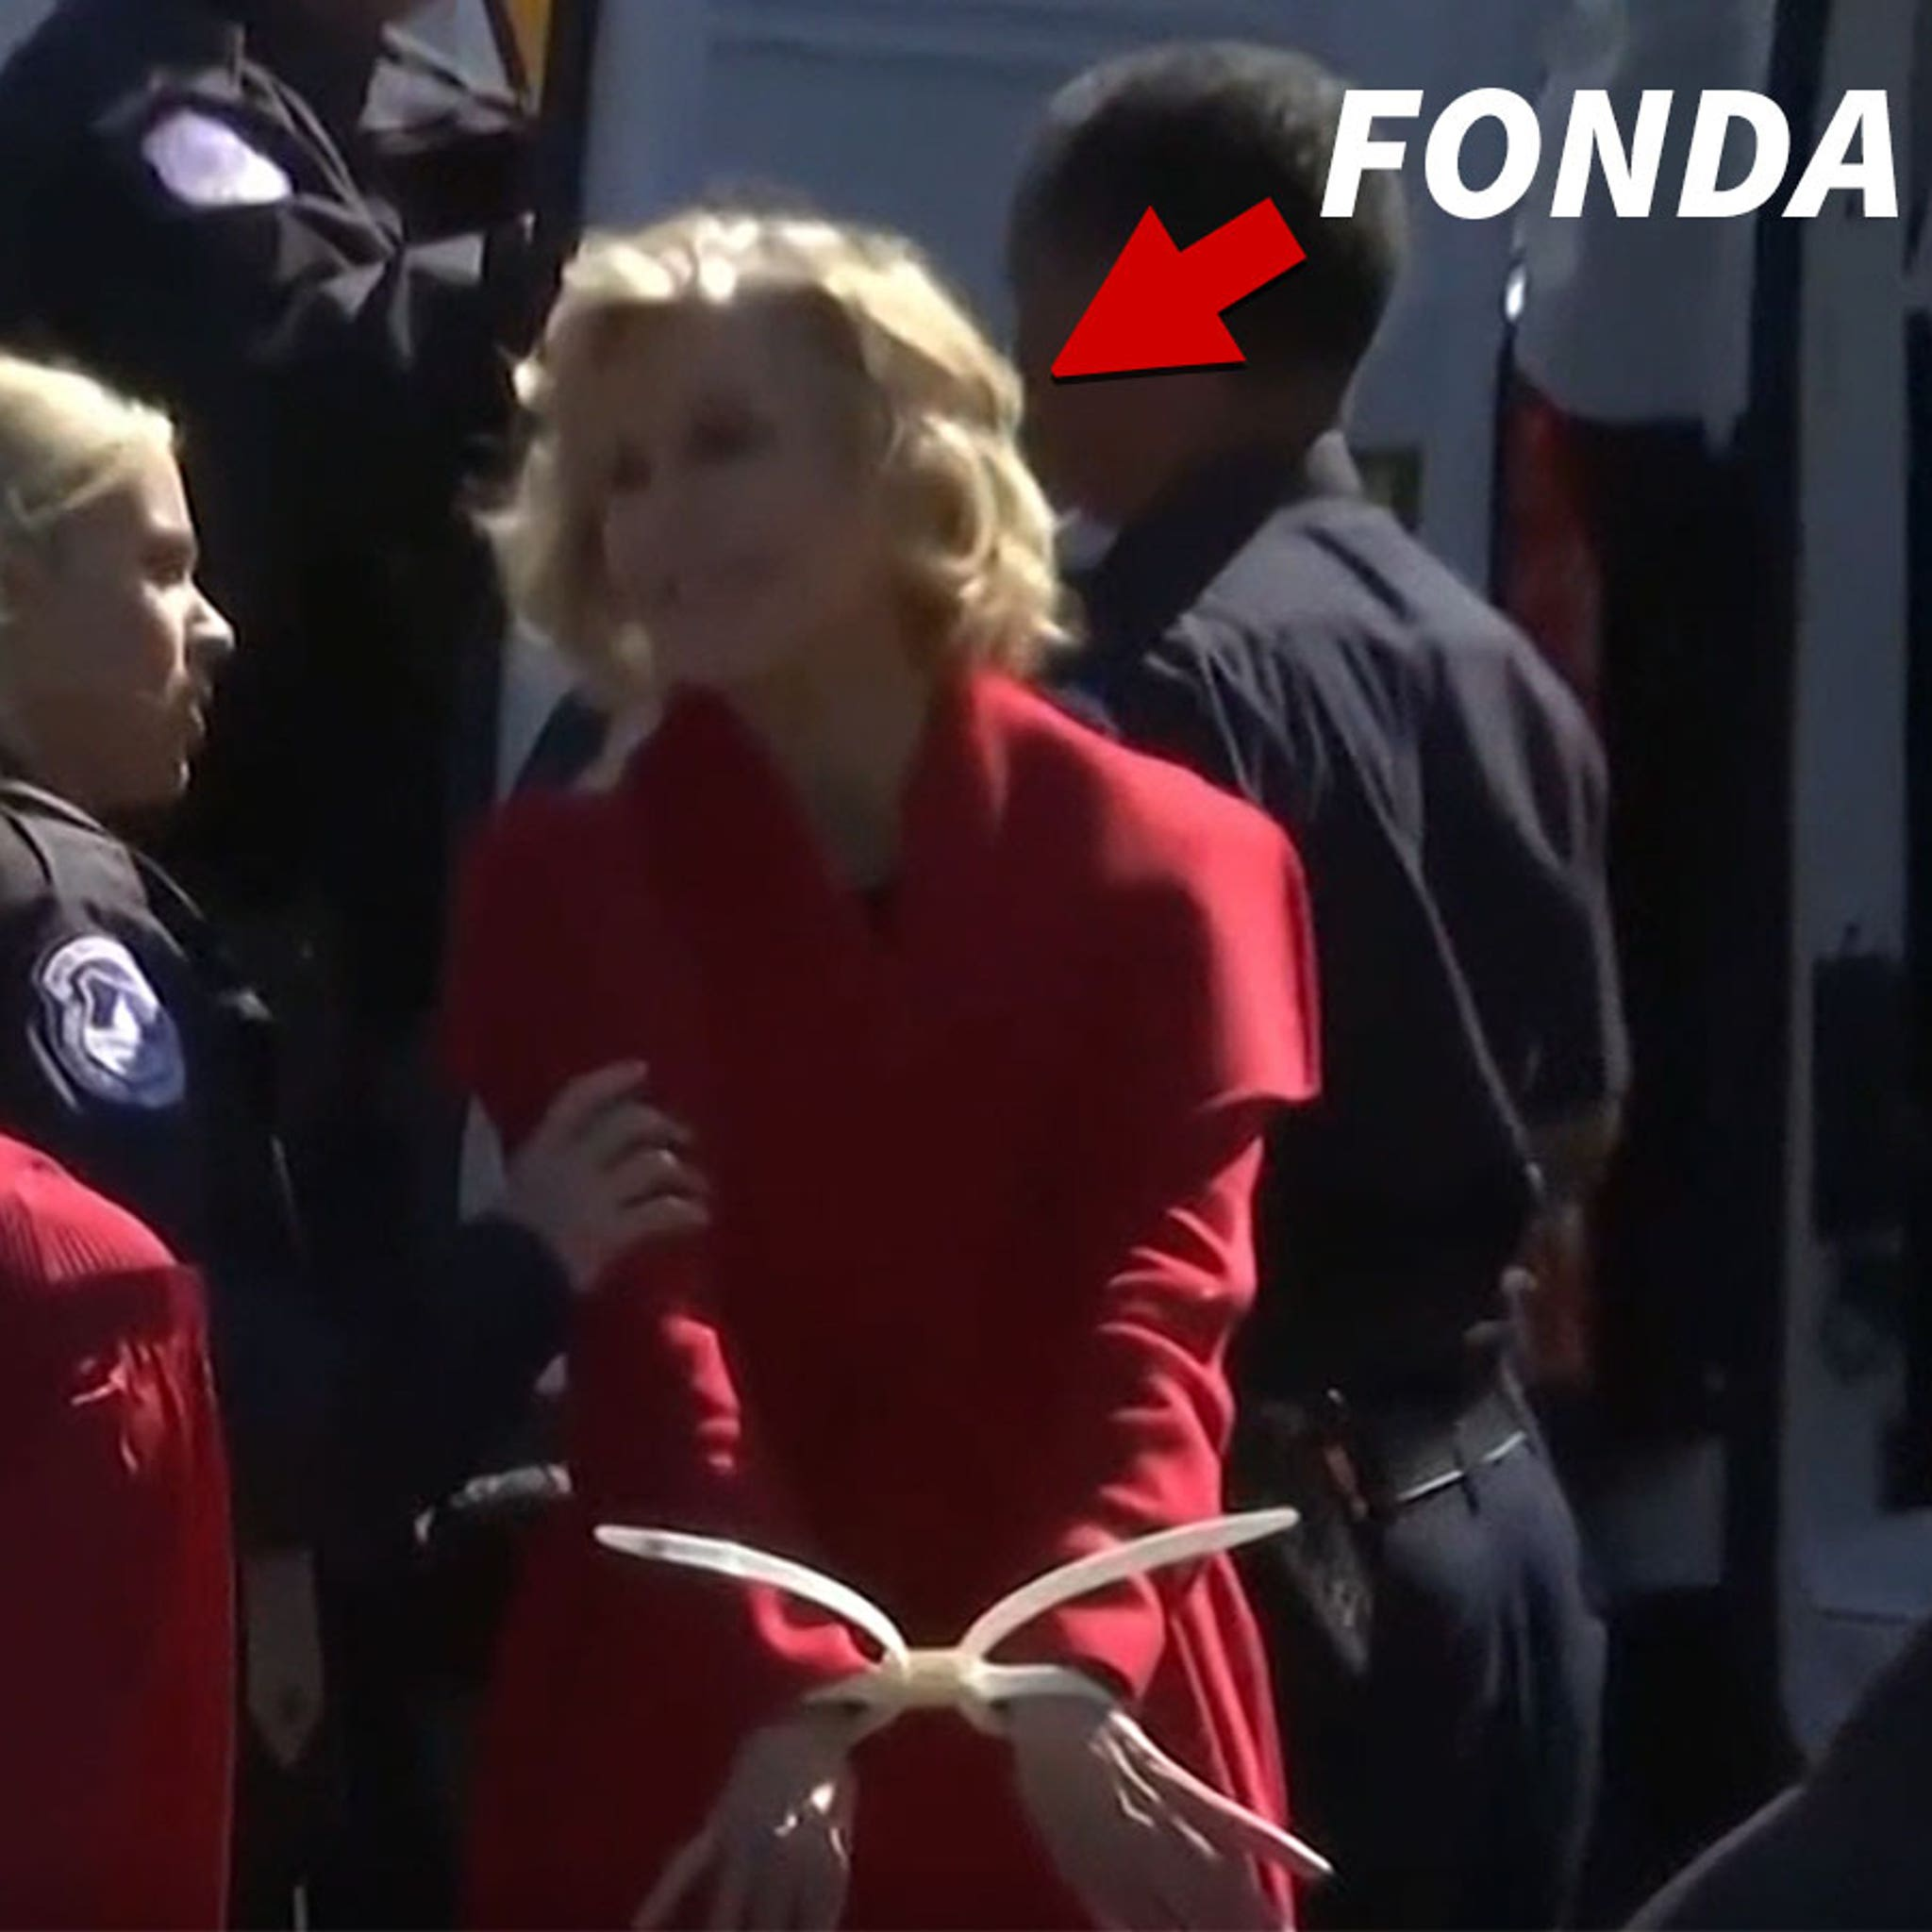 Jane Fonda Arrested Again in D.C. During Climate Change Protest